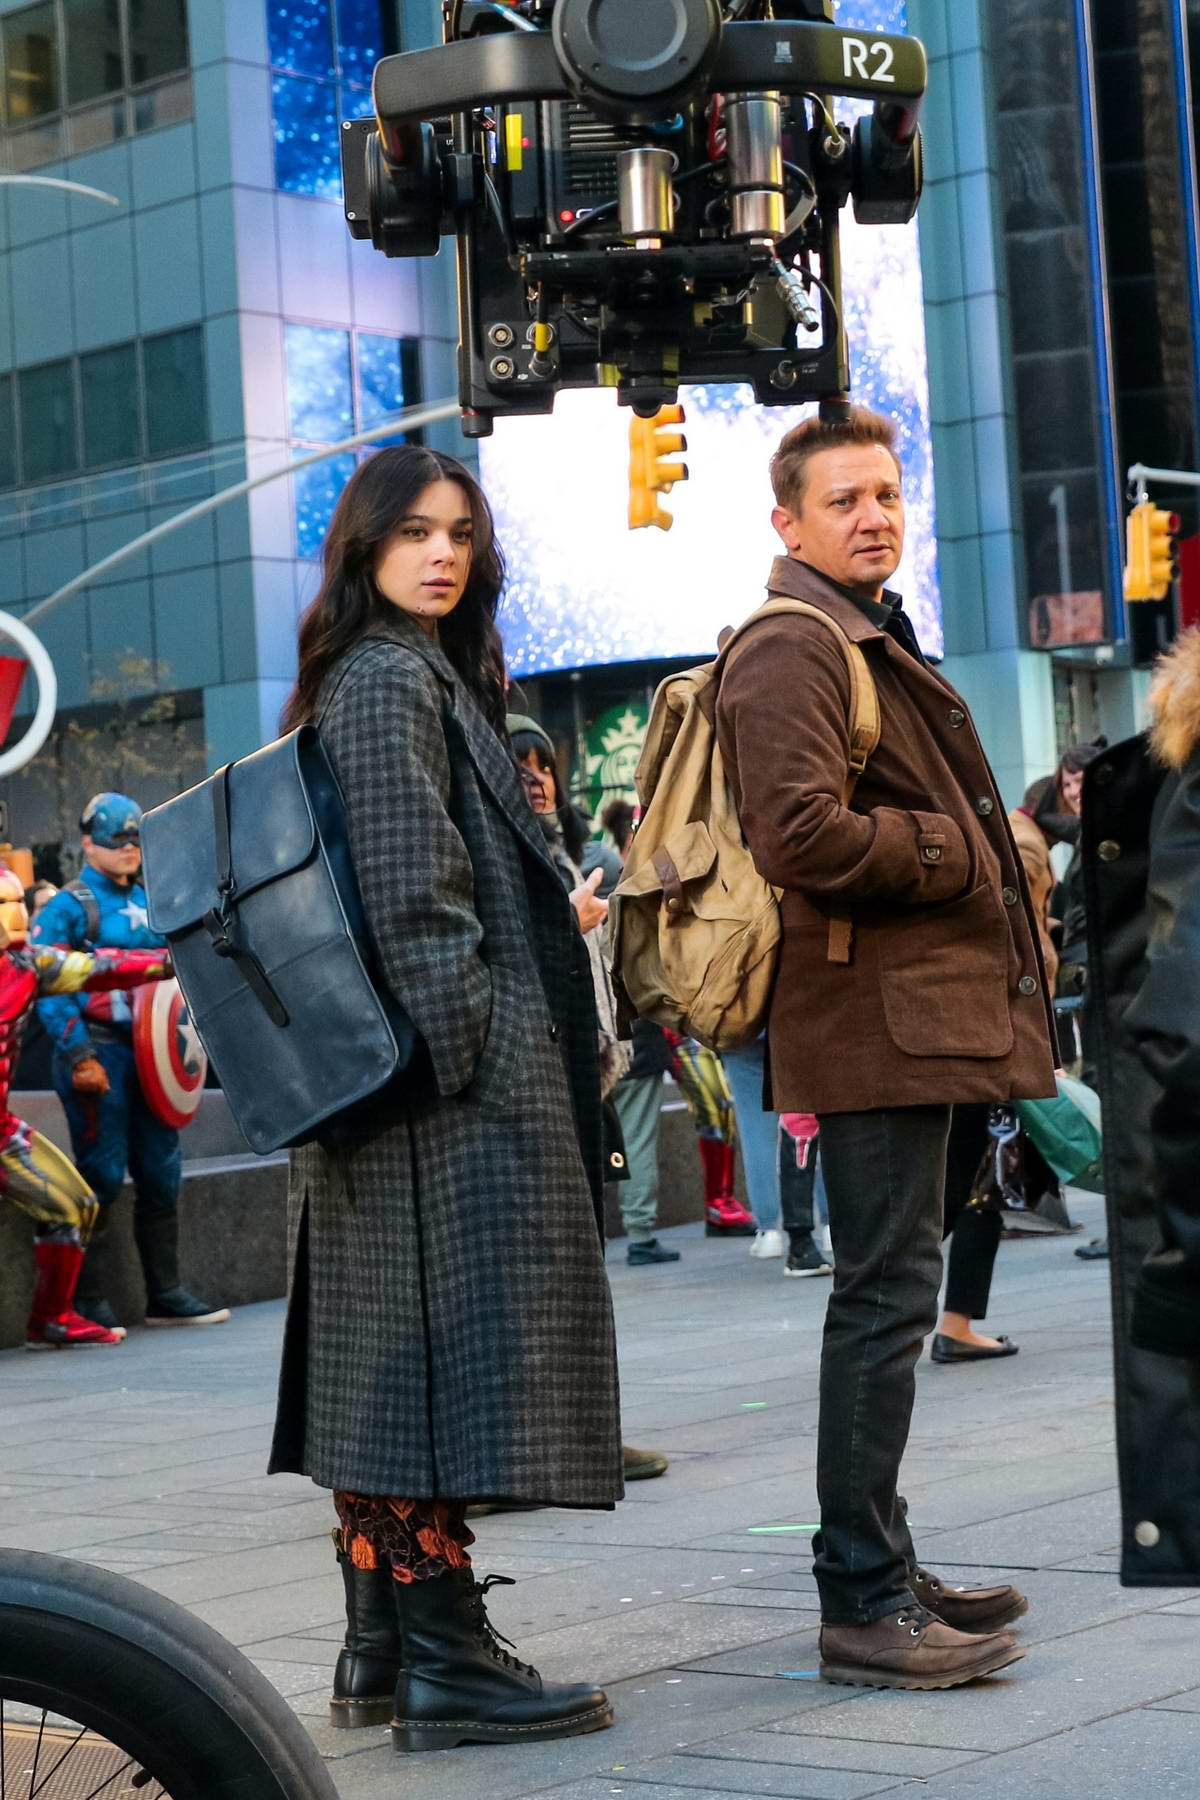 Hailee Steinfeld and Jeremy Renner seen on set of the 'Hawkeye' TV series in New York City